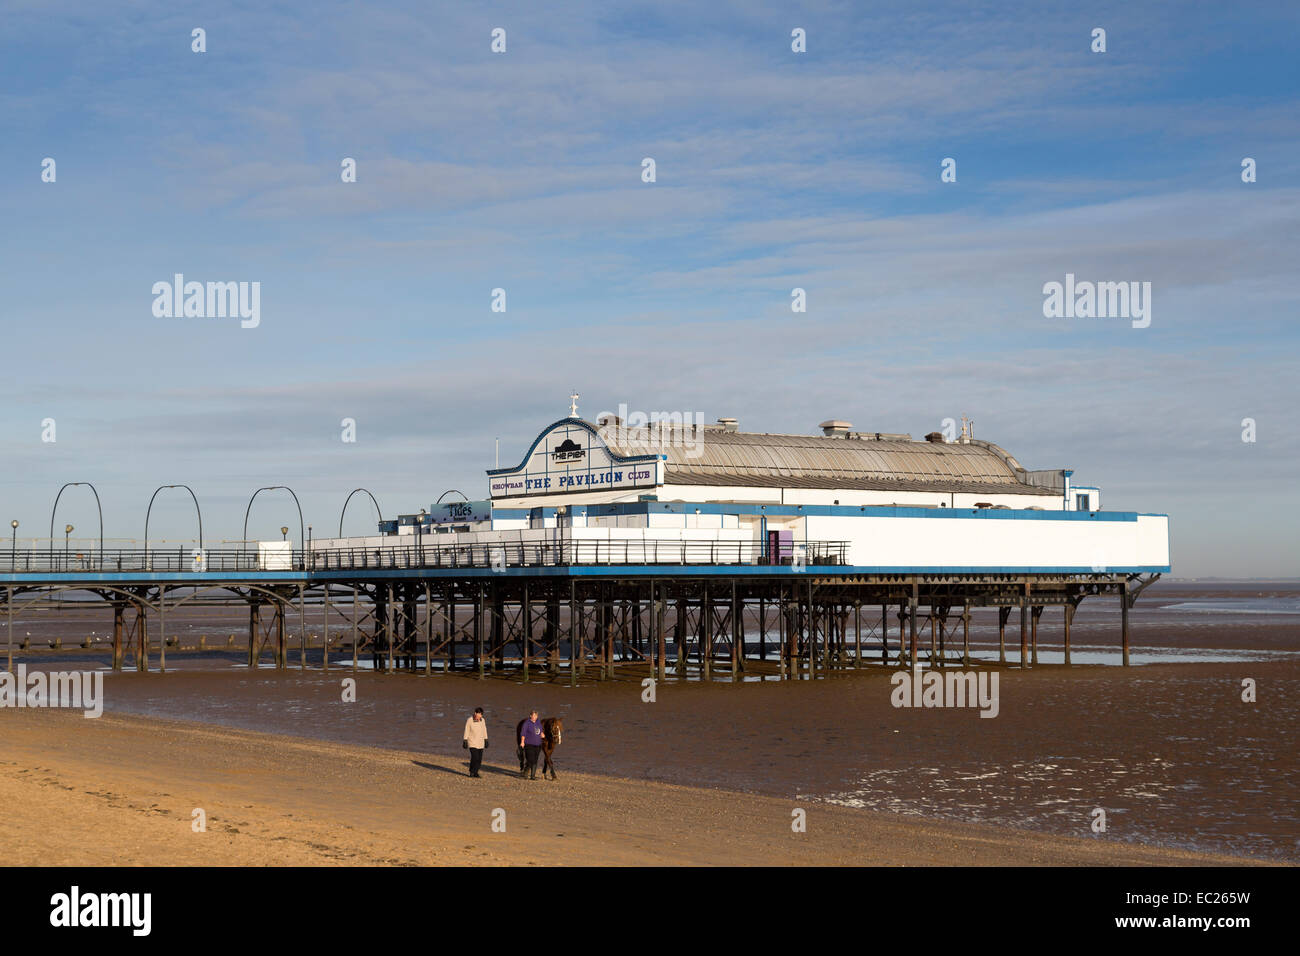 People walking horse on beach with pier at low tide, Cleethorpes, Lincolnshire, England, UK - Stock Image